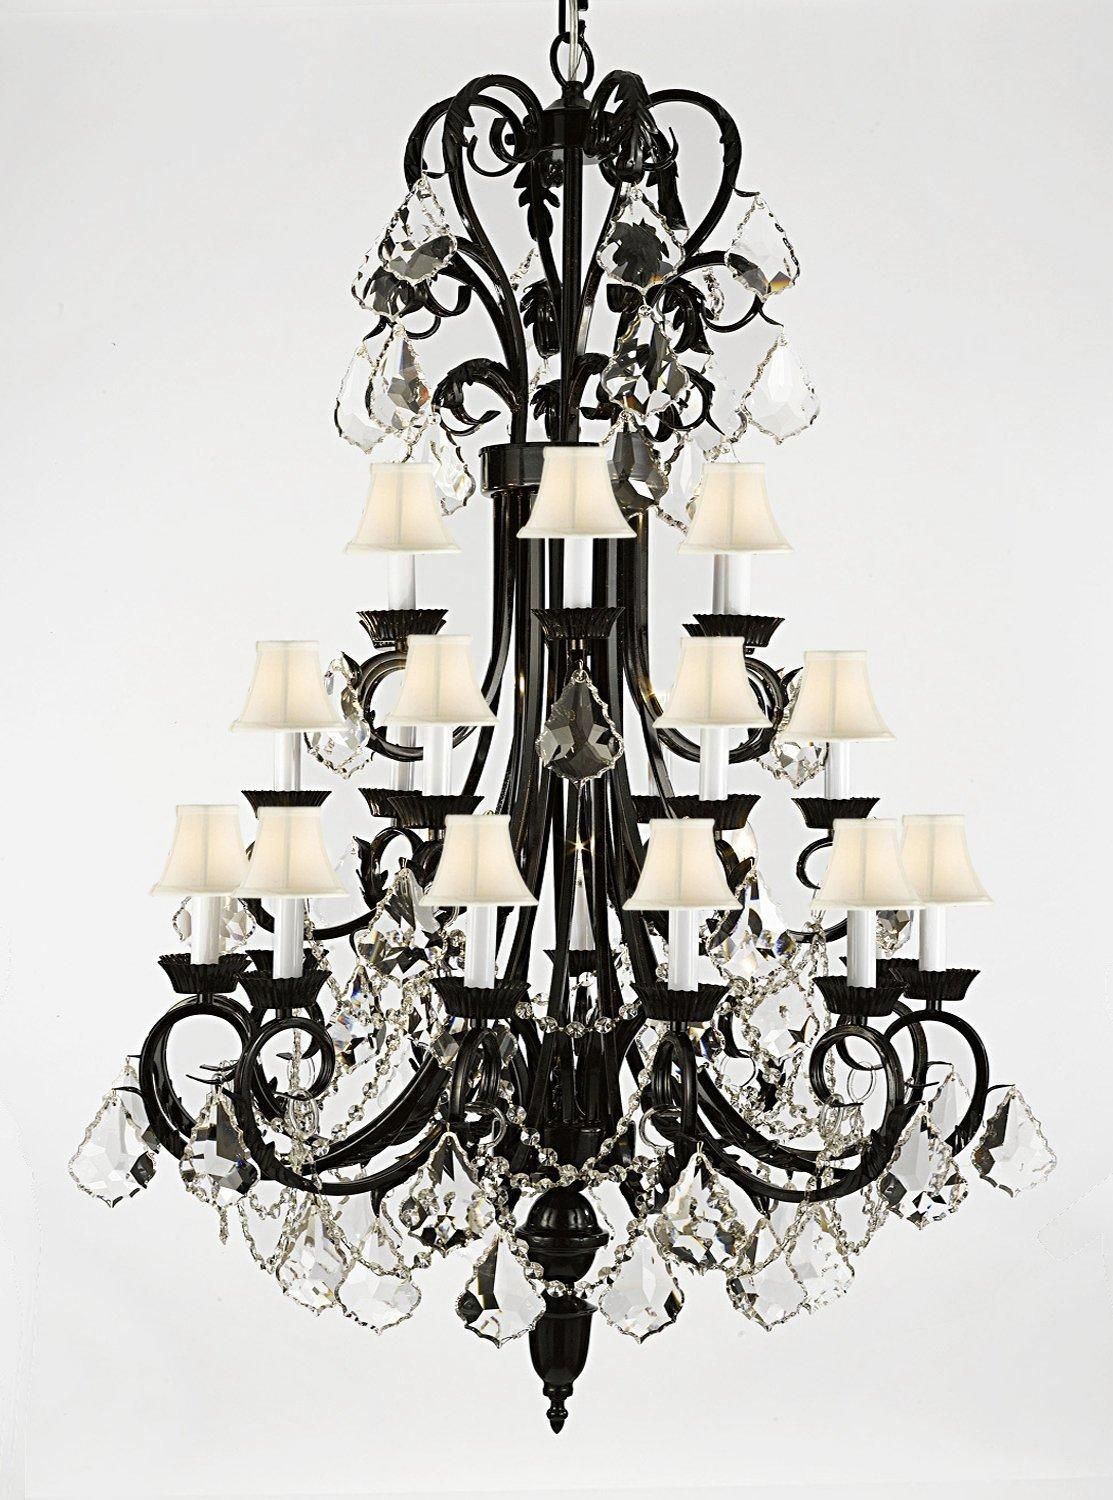 Spectra trimmed crystal wrought iron chandelier lighting 50in tall spectra trimmed wrought iron chandelier lighting 50in tall with reliable quality by swarovski arubaitofo Images